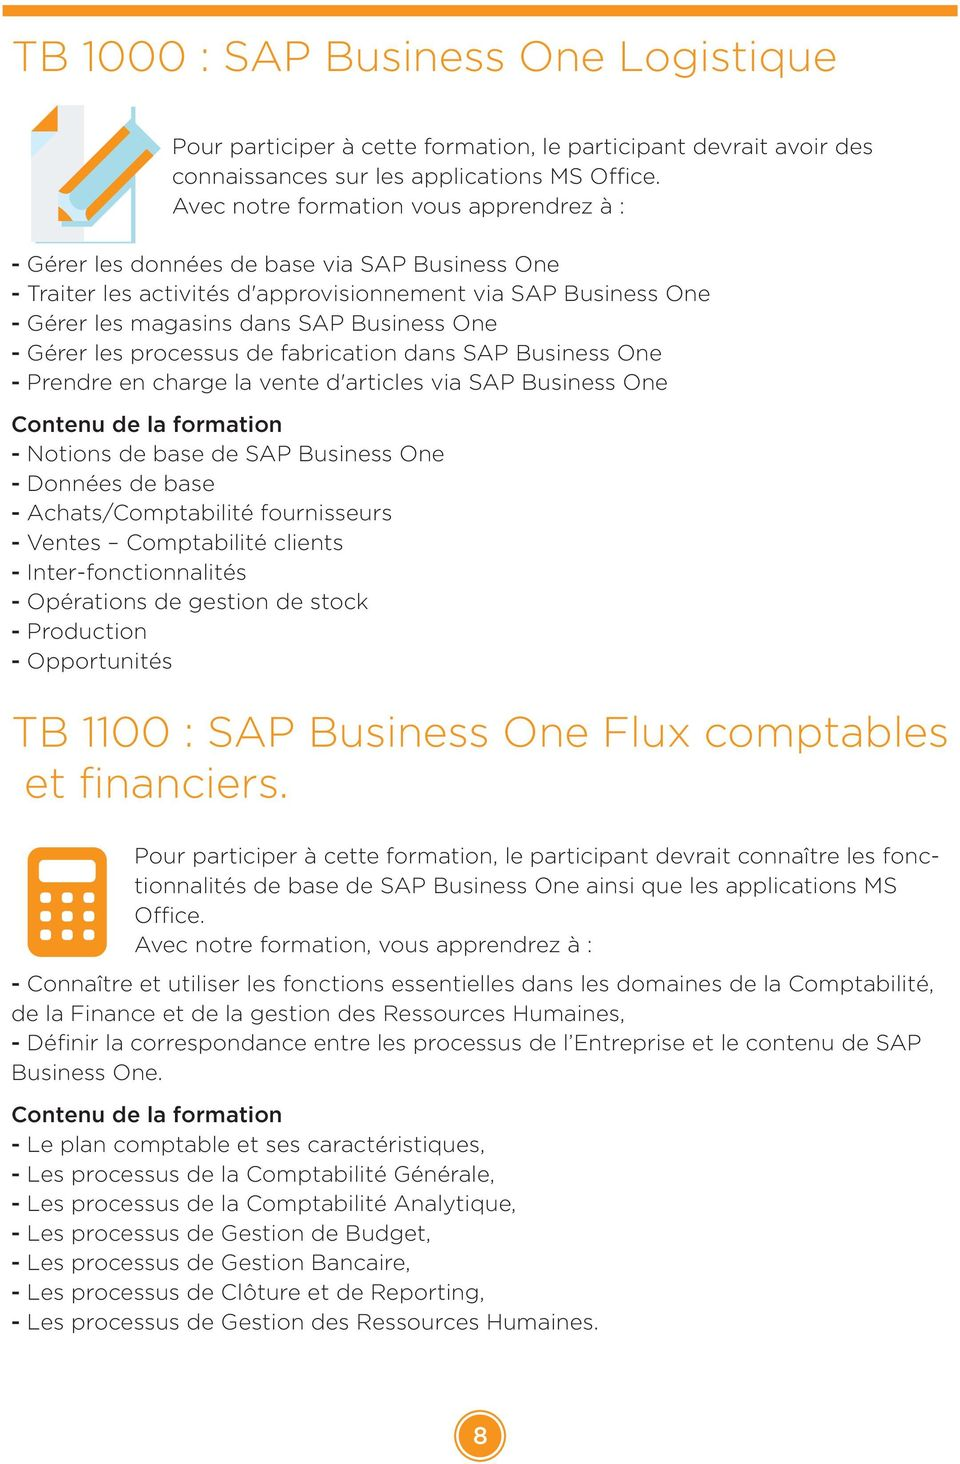 les processus de fabrication dans SAP Business One Prendre en charge la vente d'articles via SAP Business One Contenu de la formation - Notions de base de SAP Business One - Données de base -